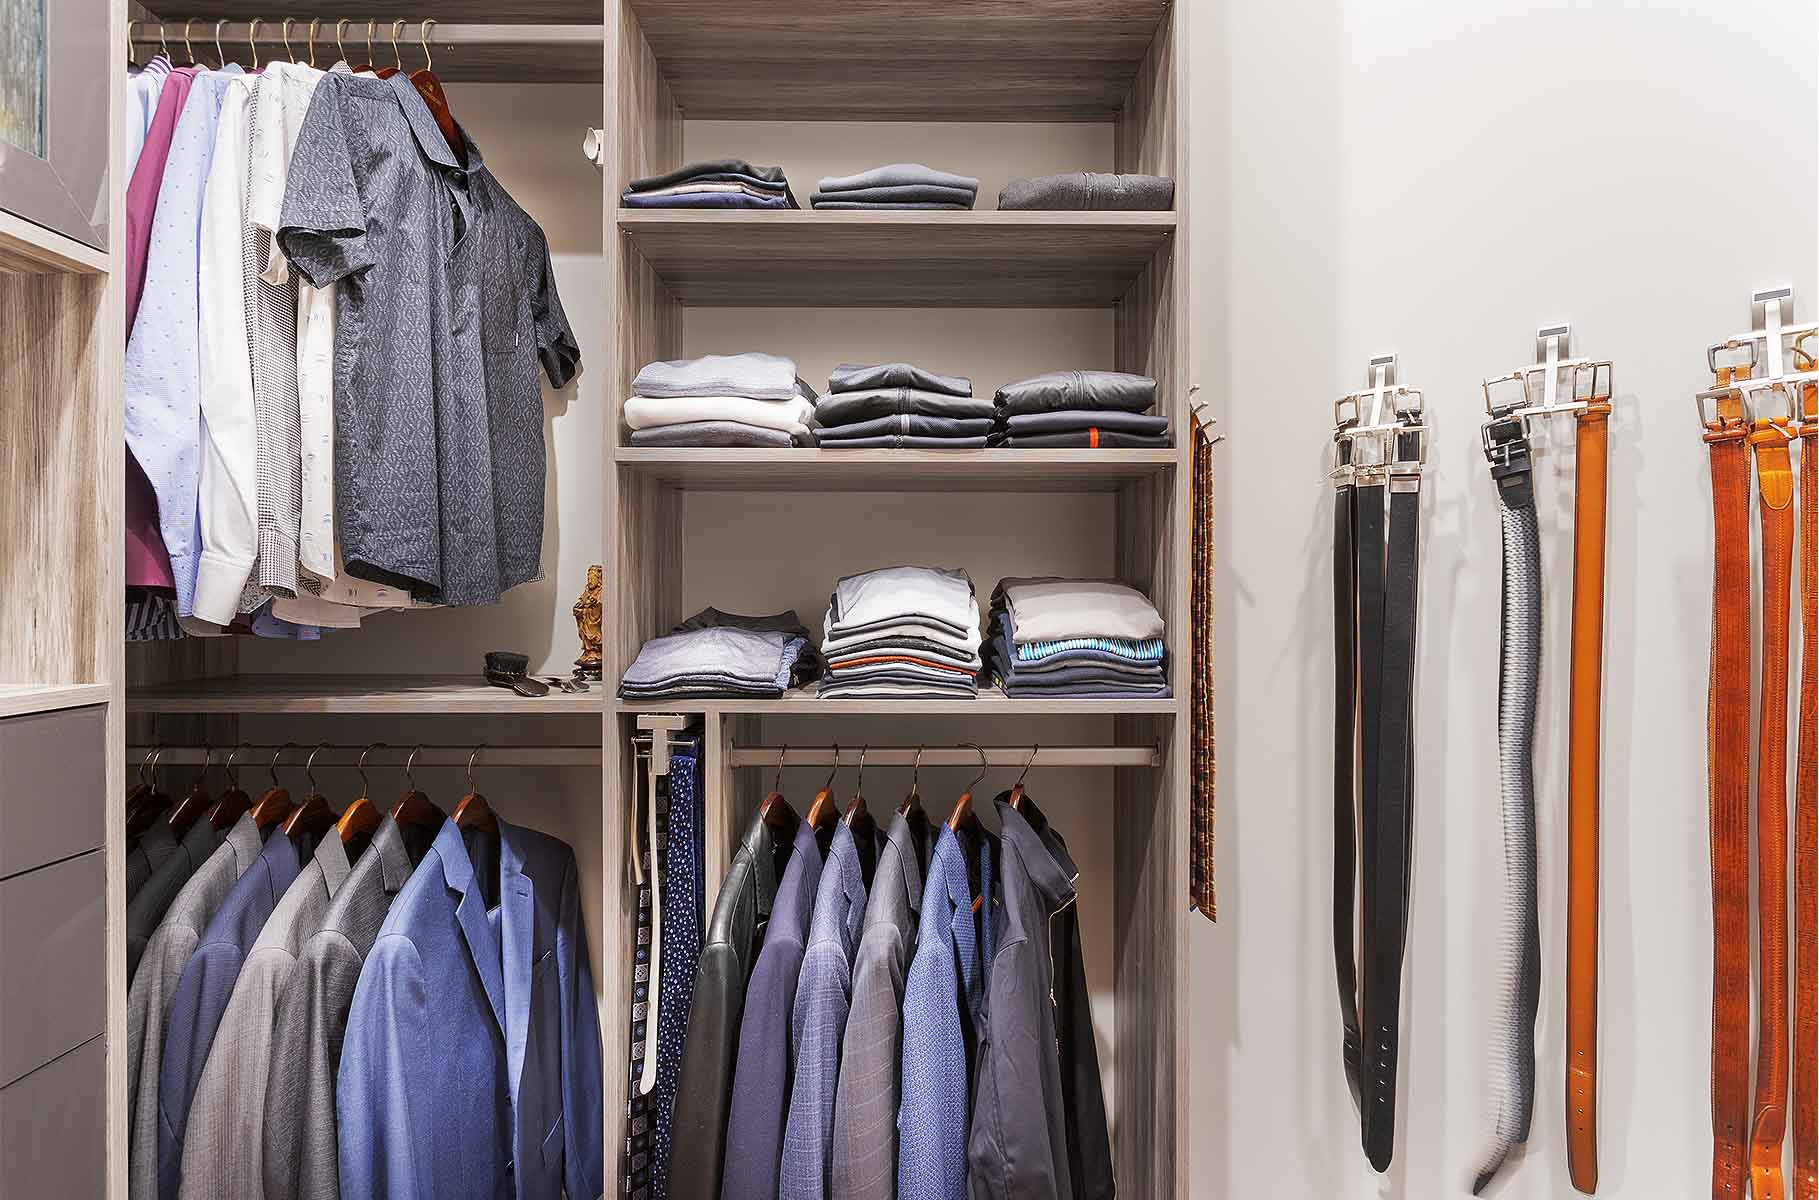 Closet with features organizing clothing and accessories